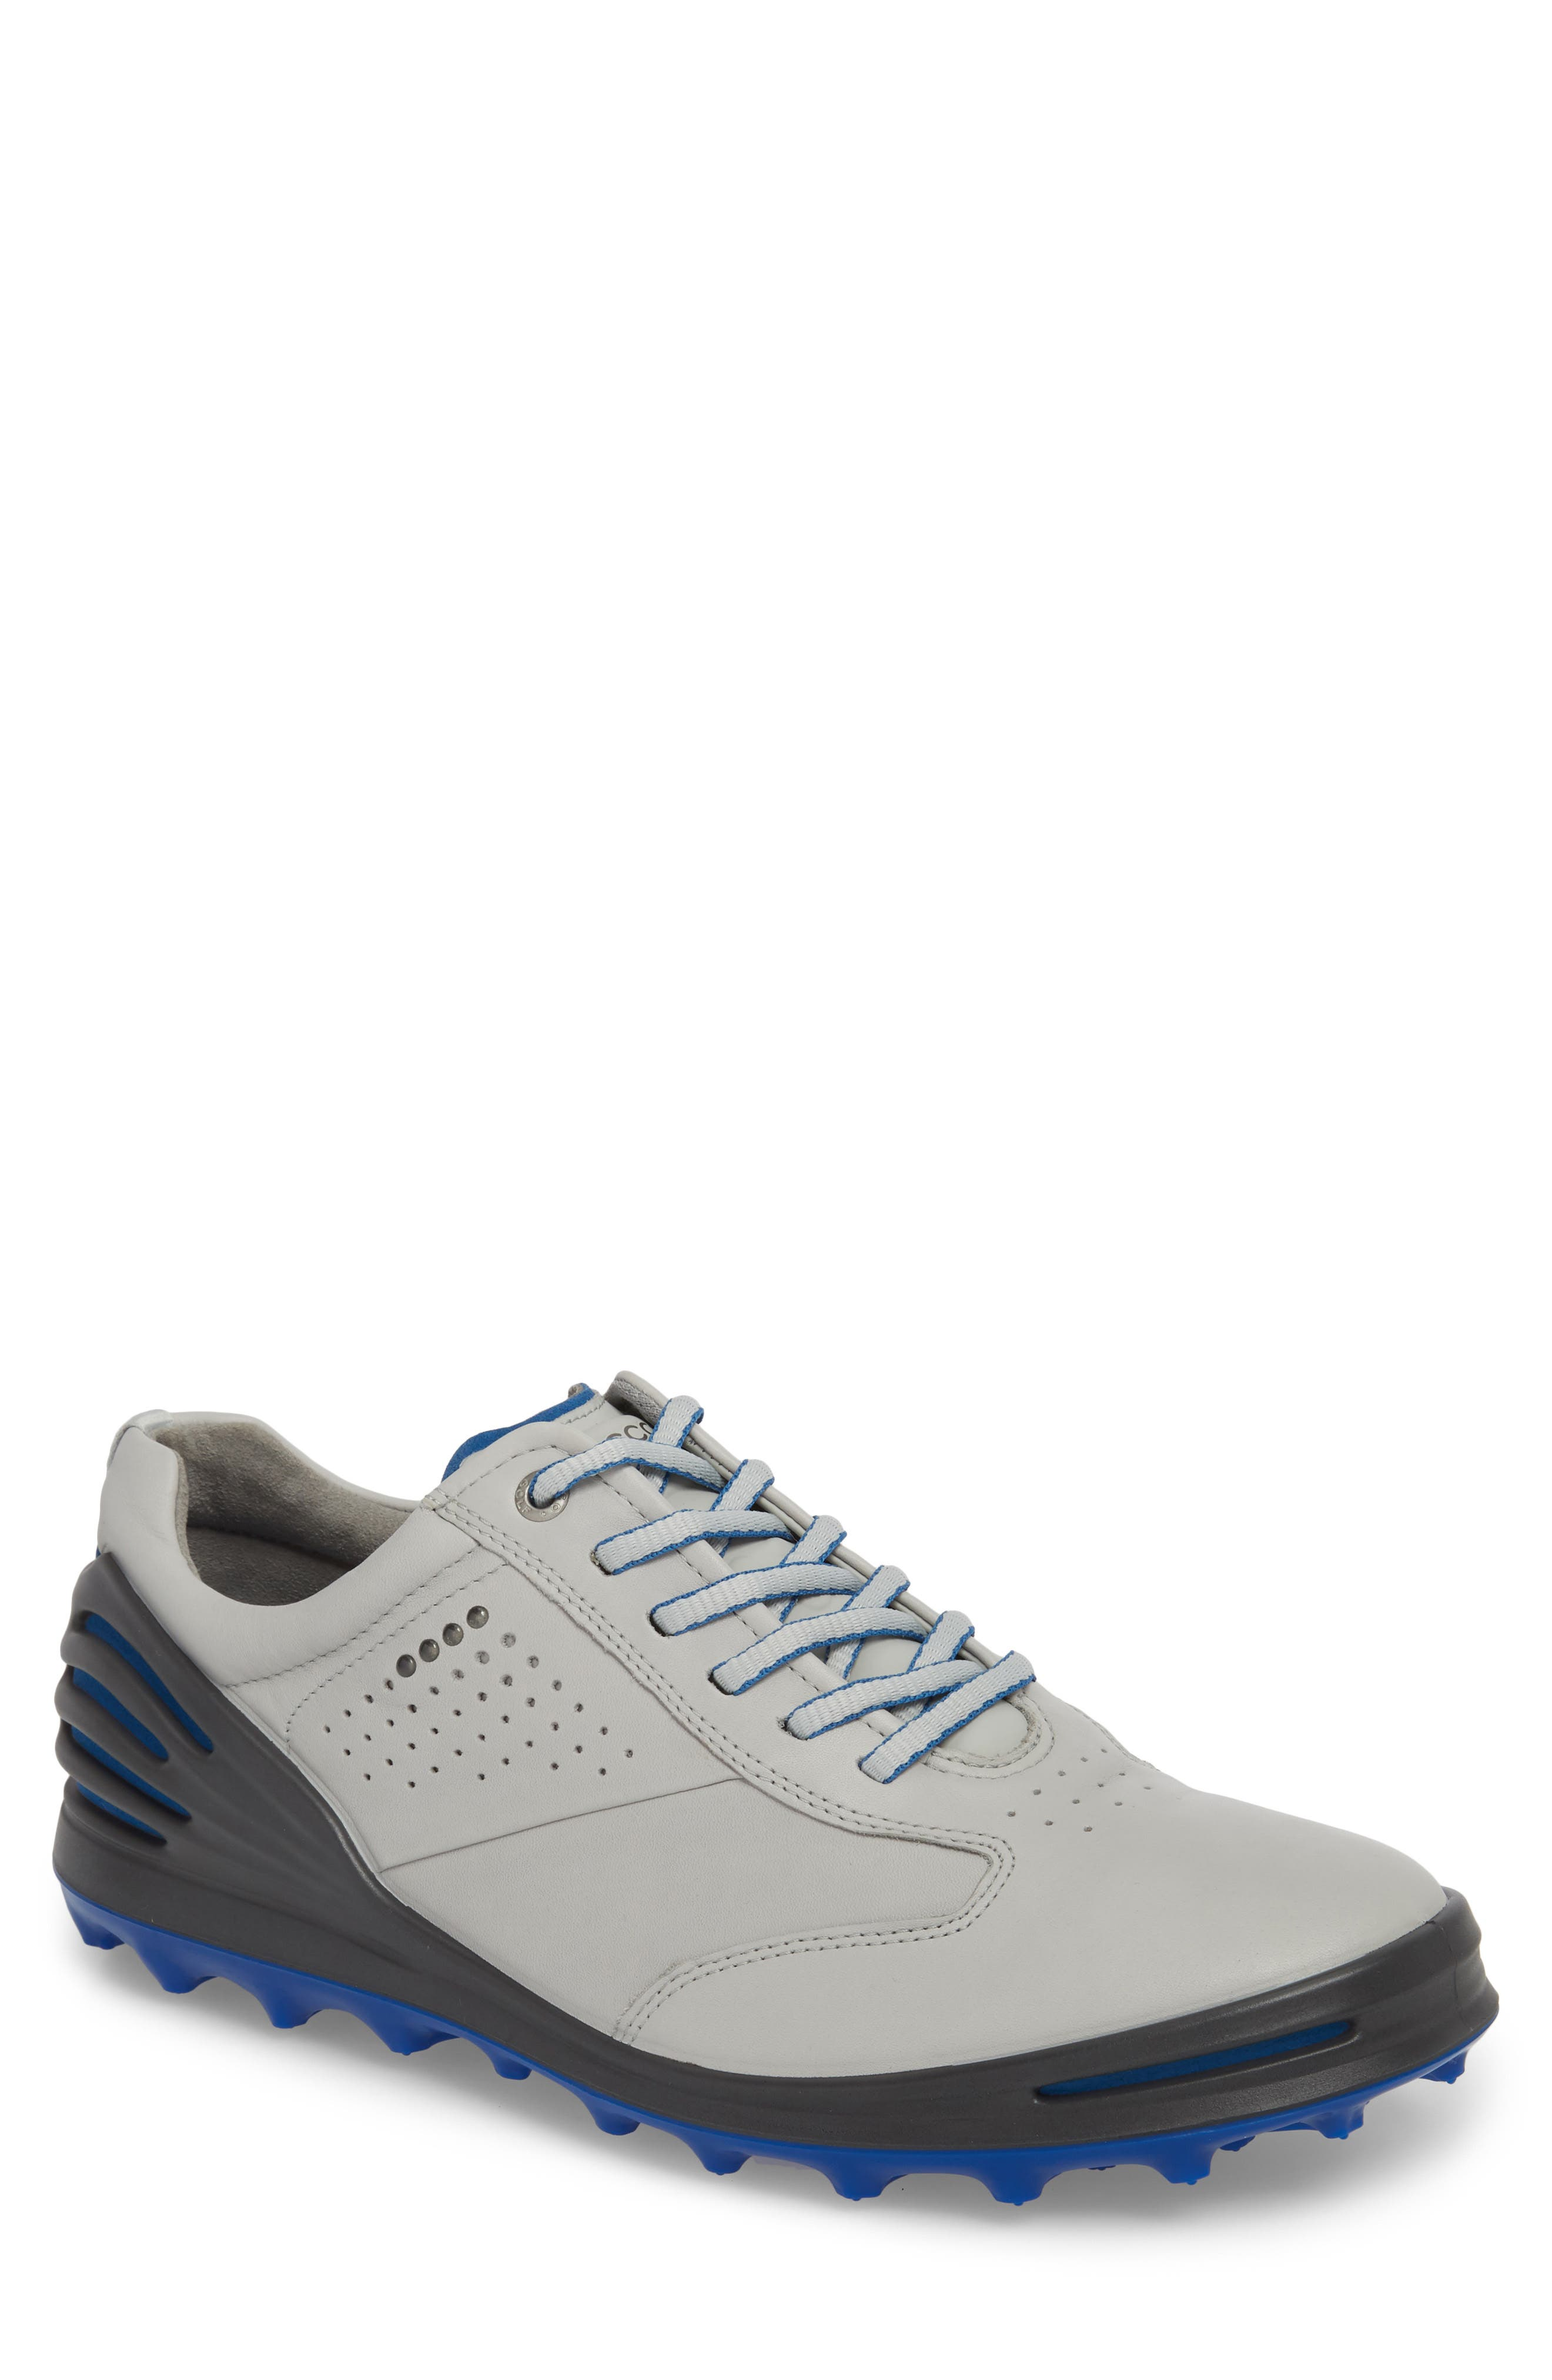 Cage Pro Golf Shoe,                         Main,                         color, CONCRETE/ BERMUDA BLUE LEATHER